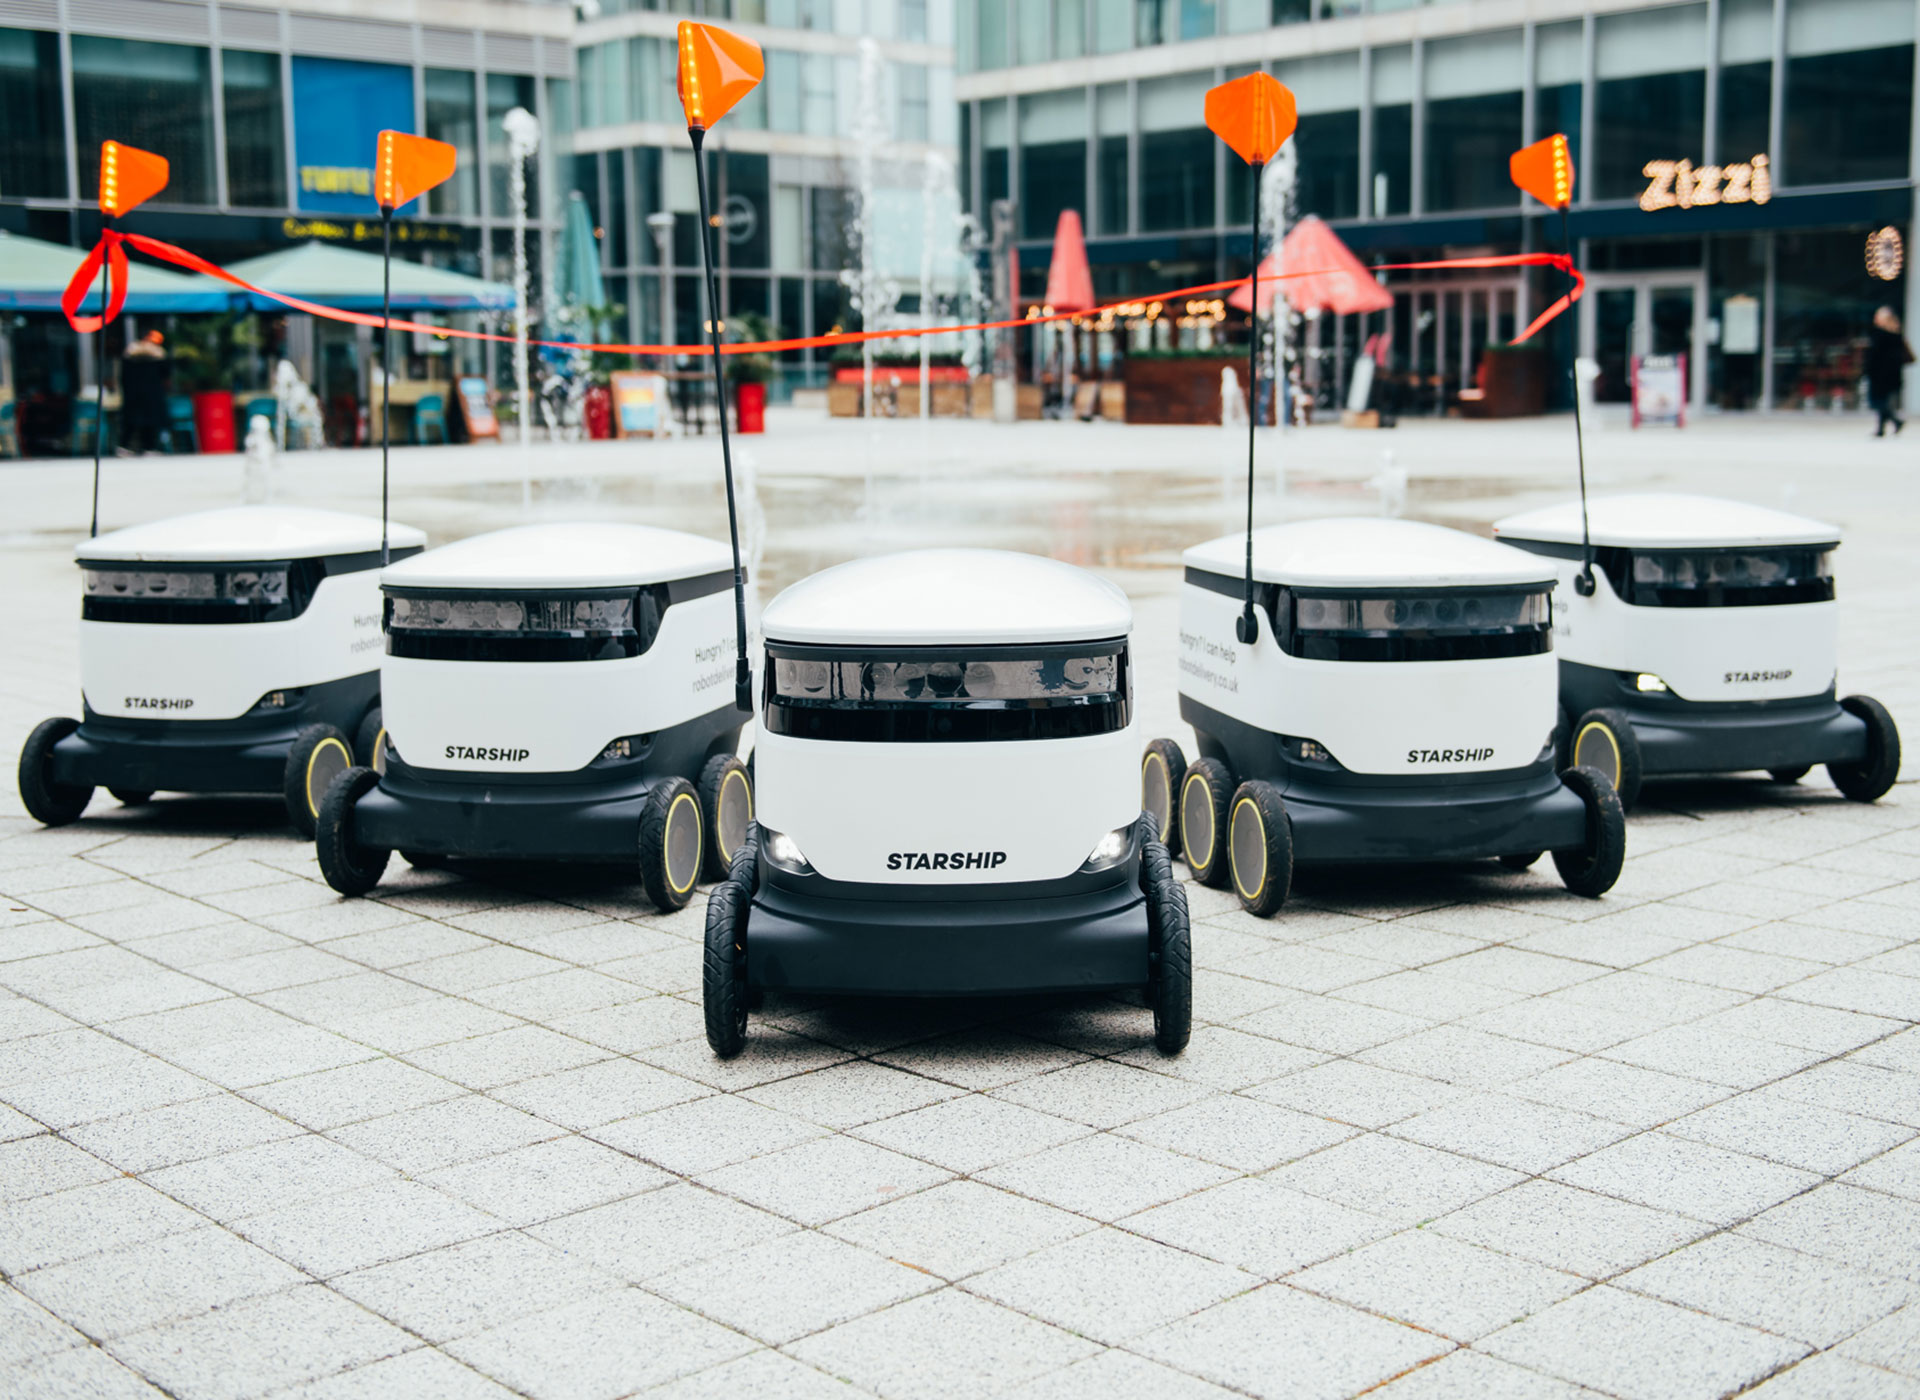 Robot delivery service comes to first UK town centre